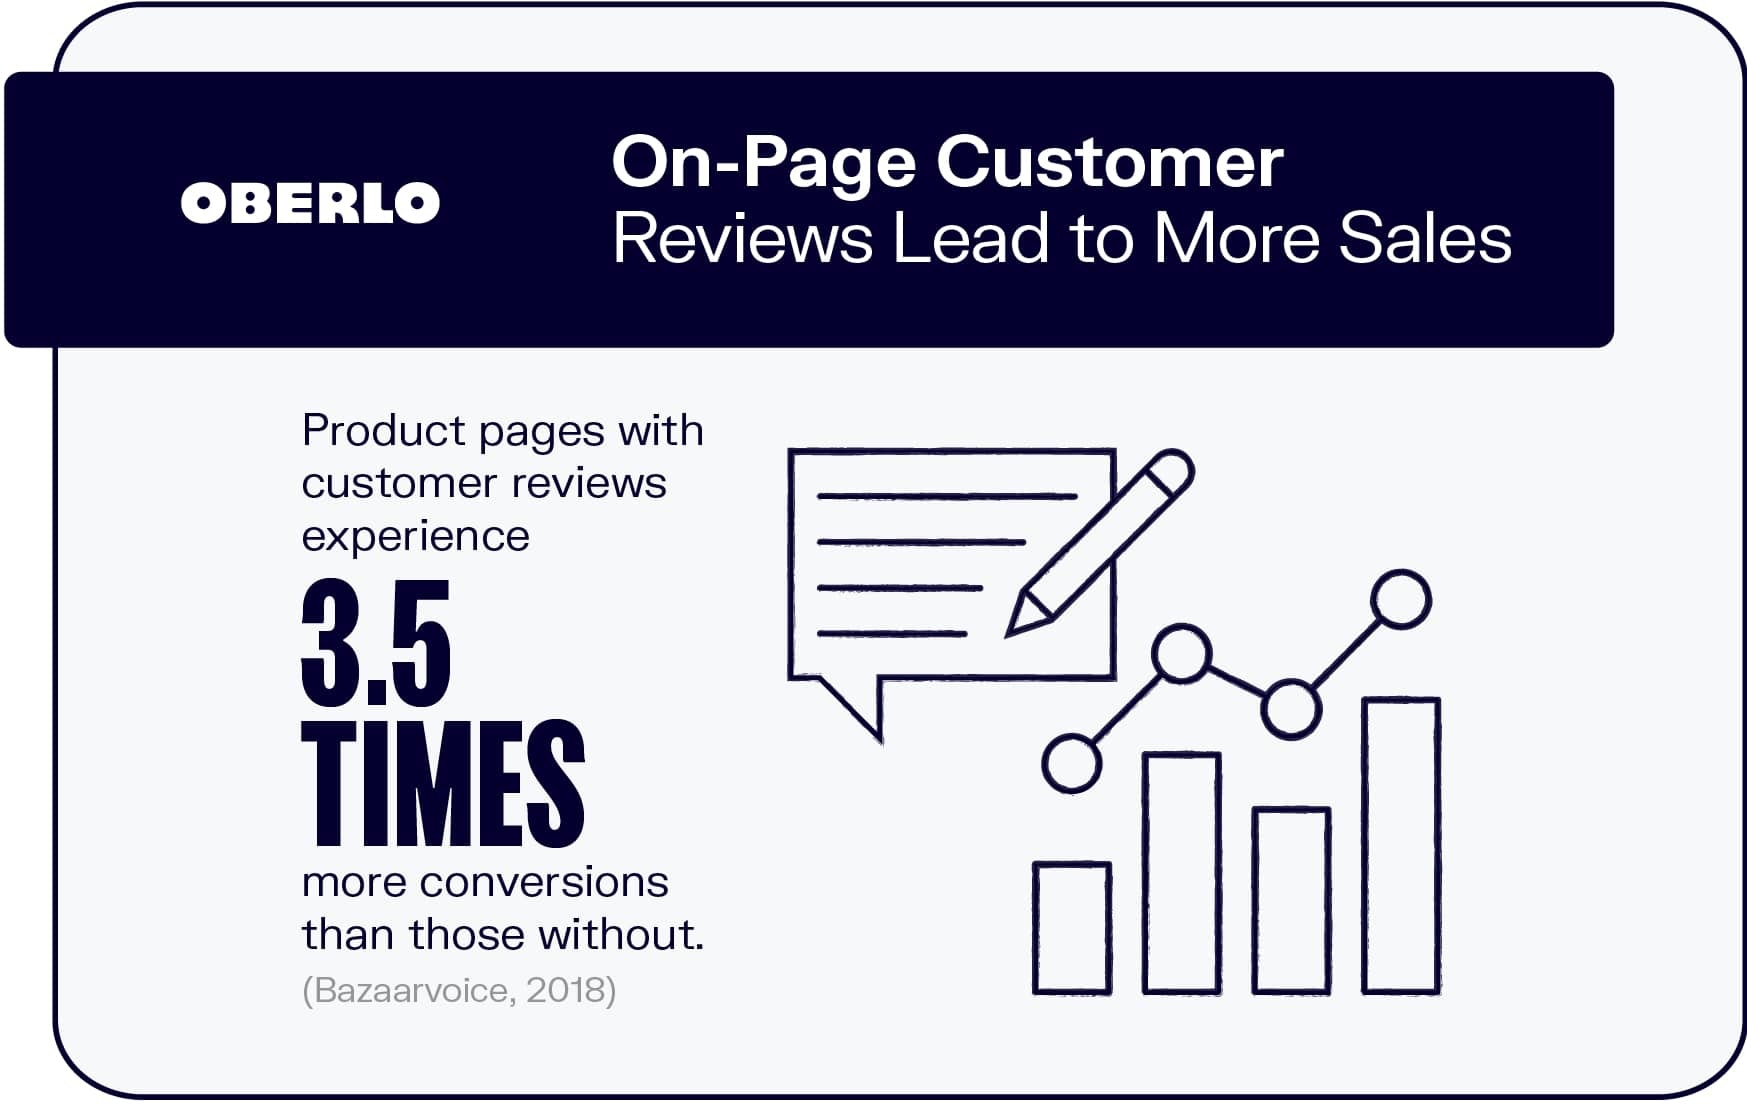 On-Page Customer Reviews Lead to More Sales